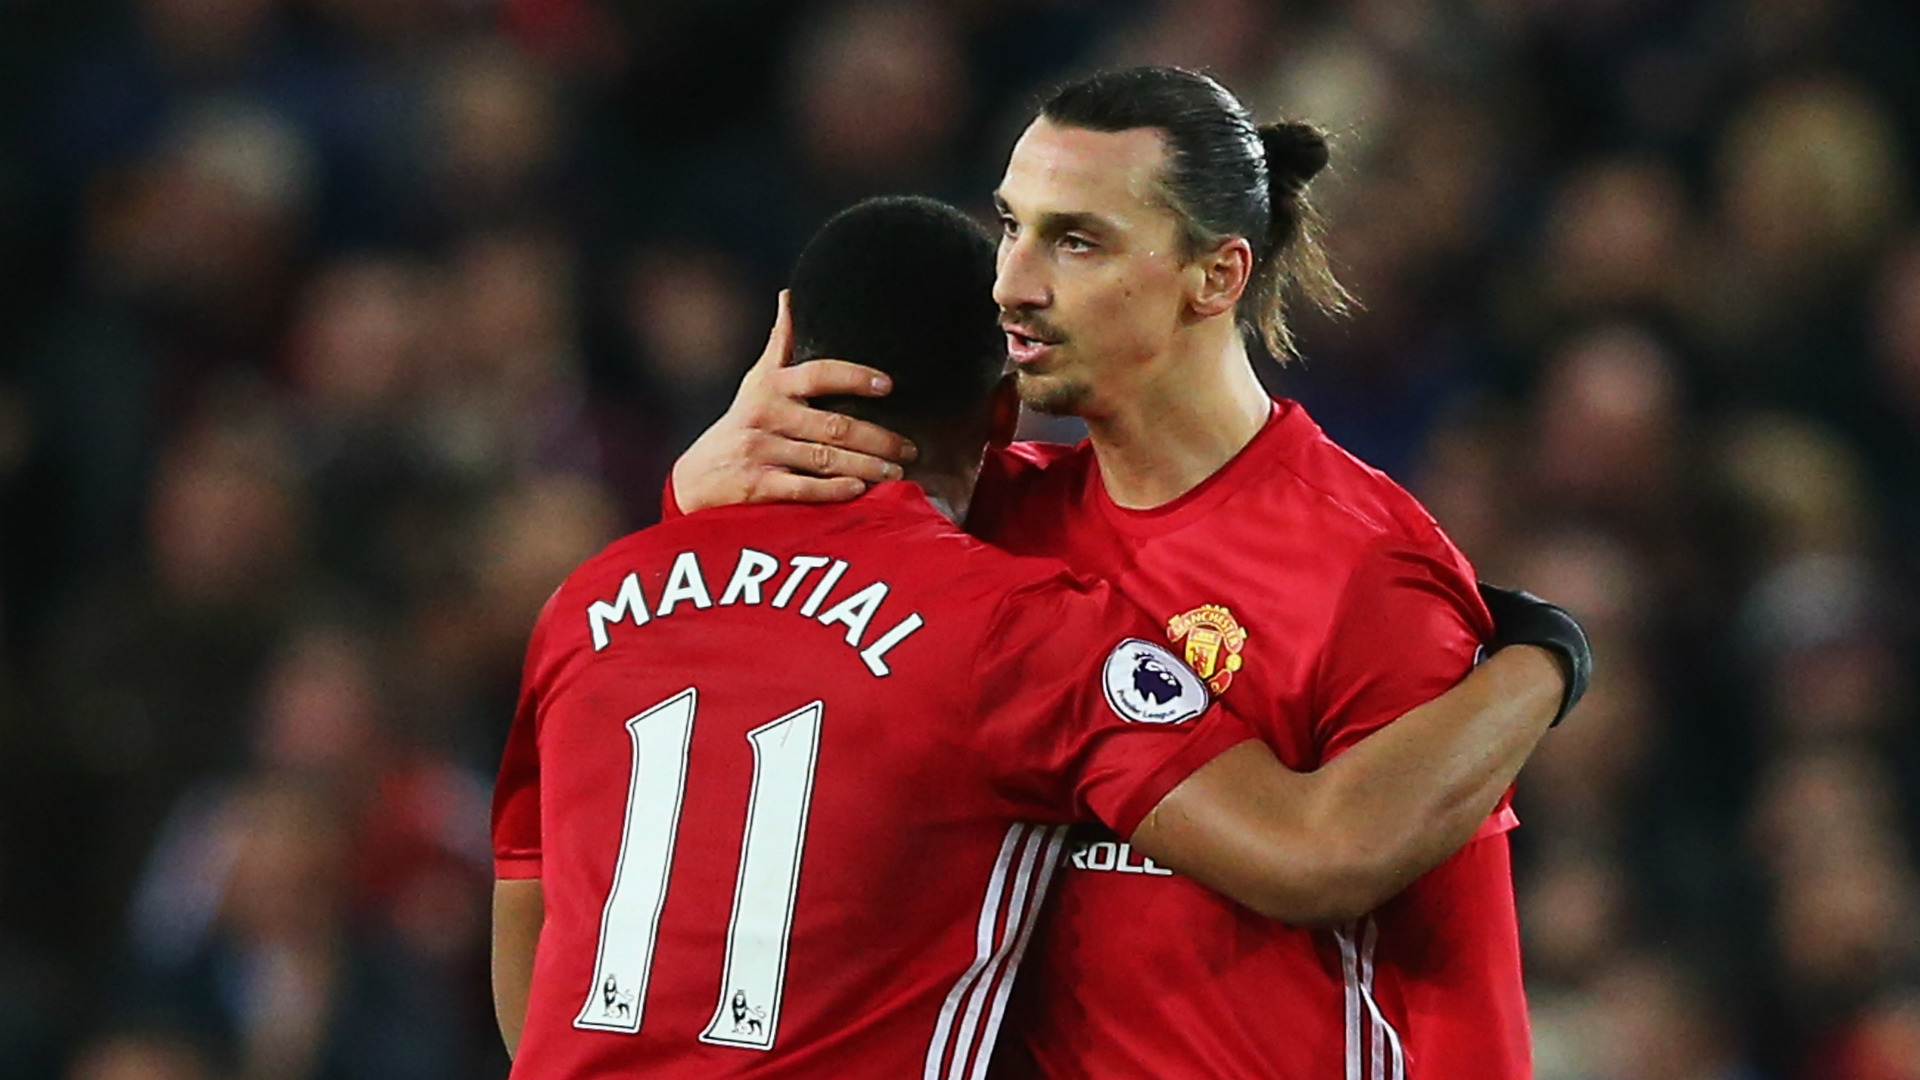 Zlatan Ibrahimovic Anthony Martial Manchester United 31122016